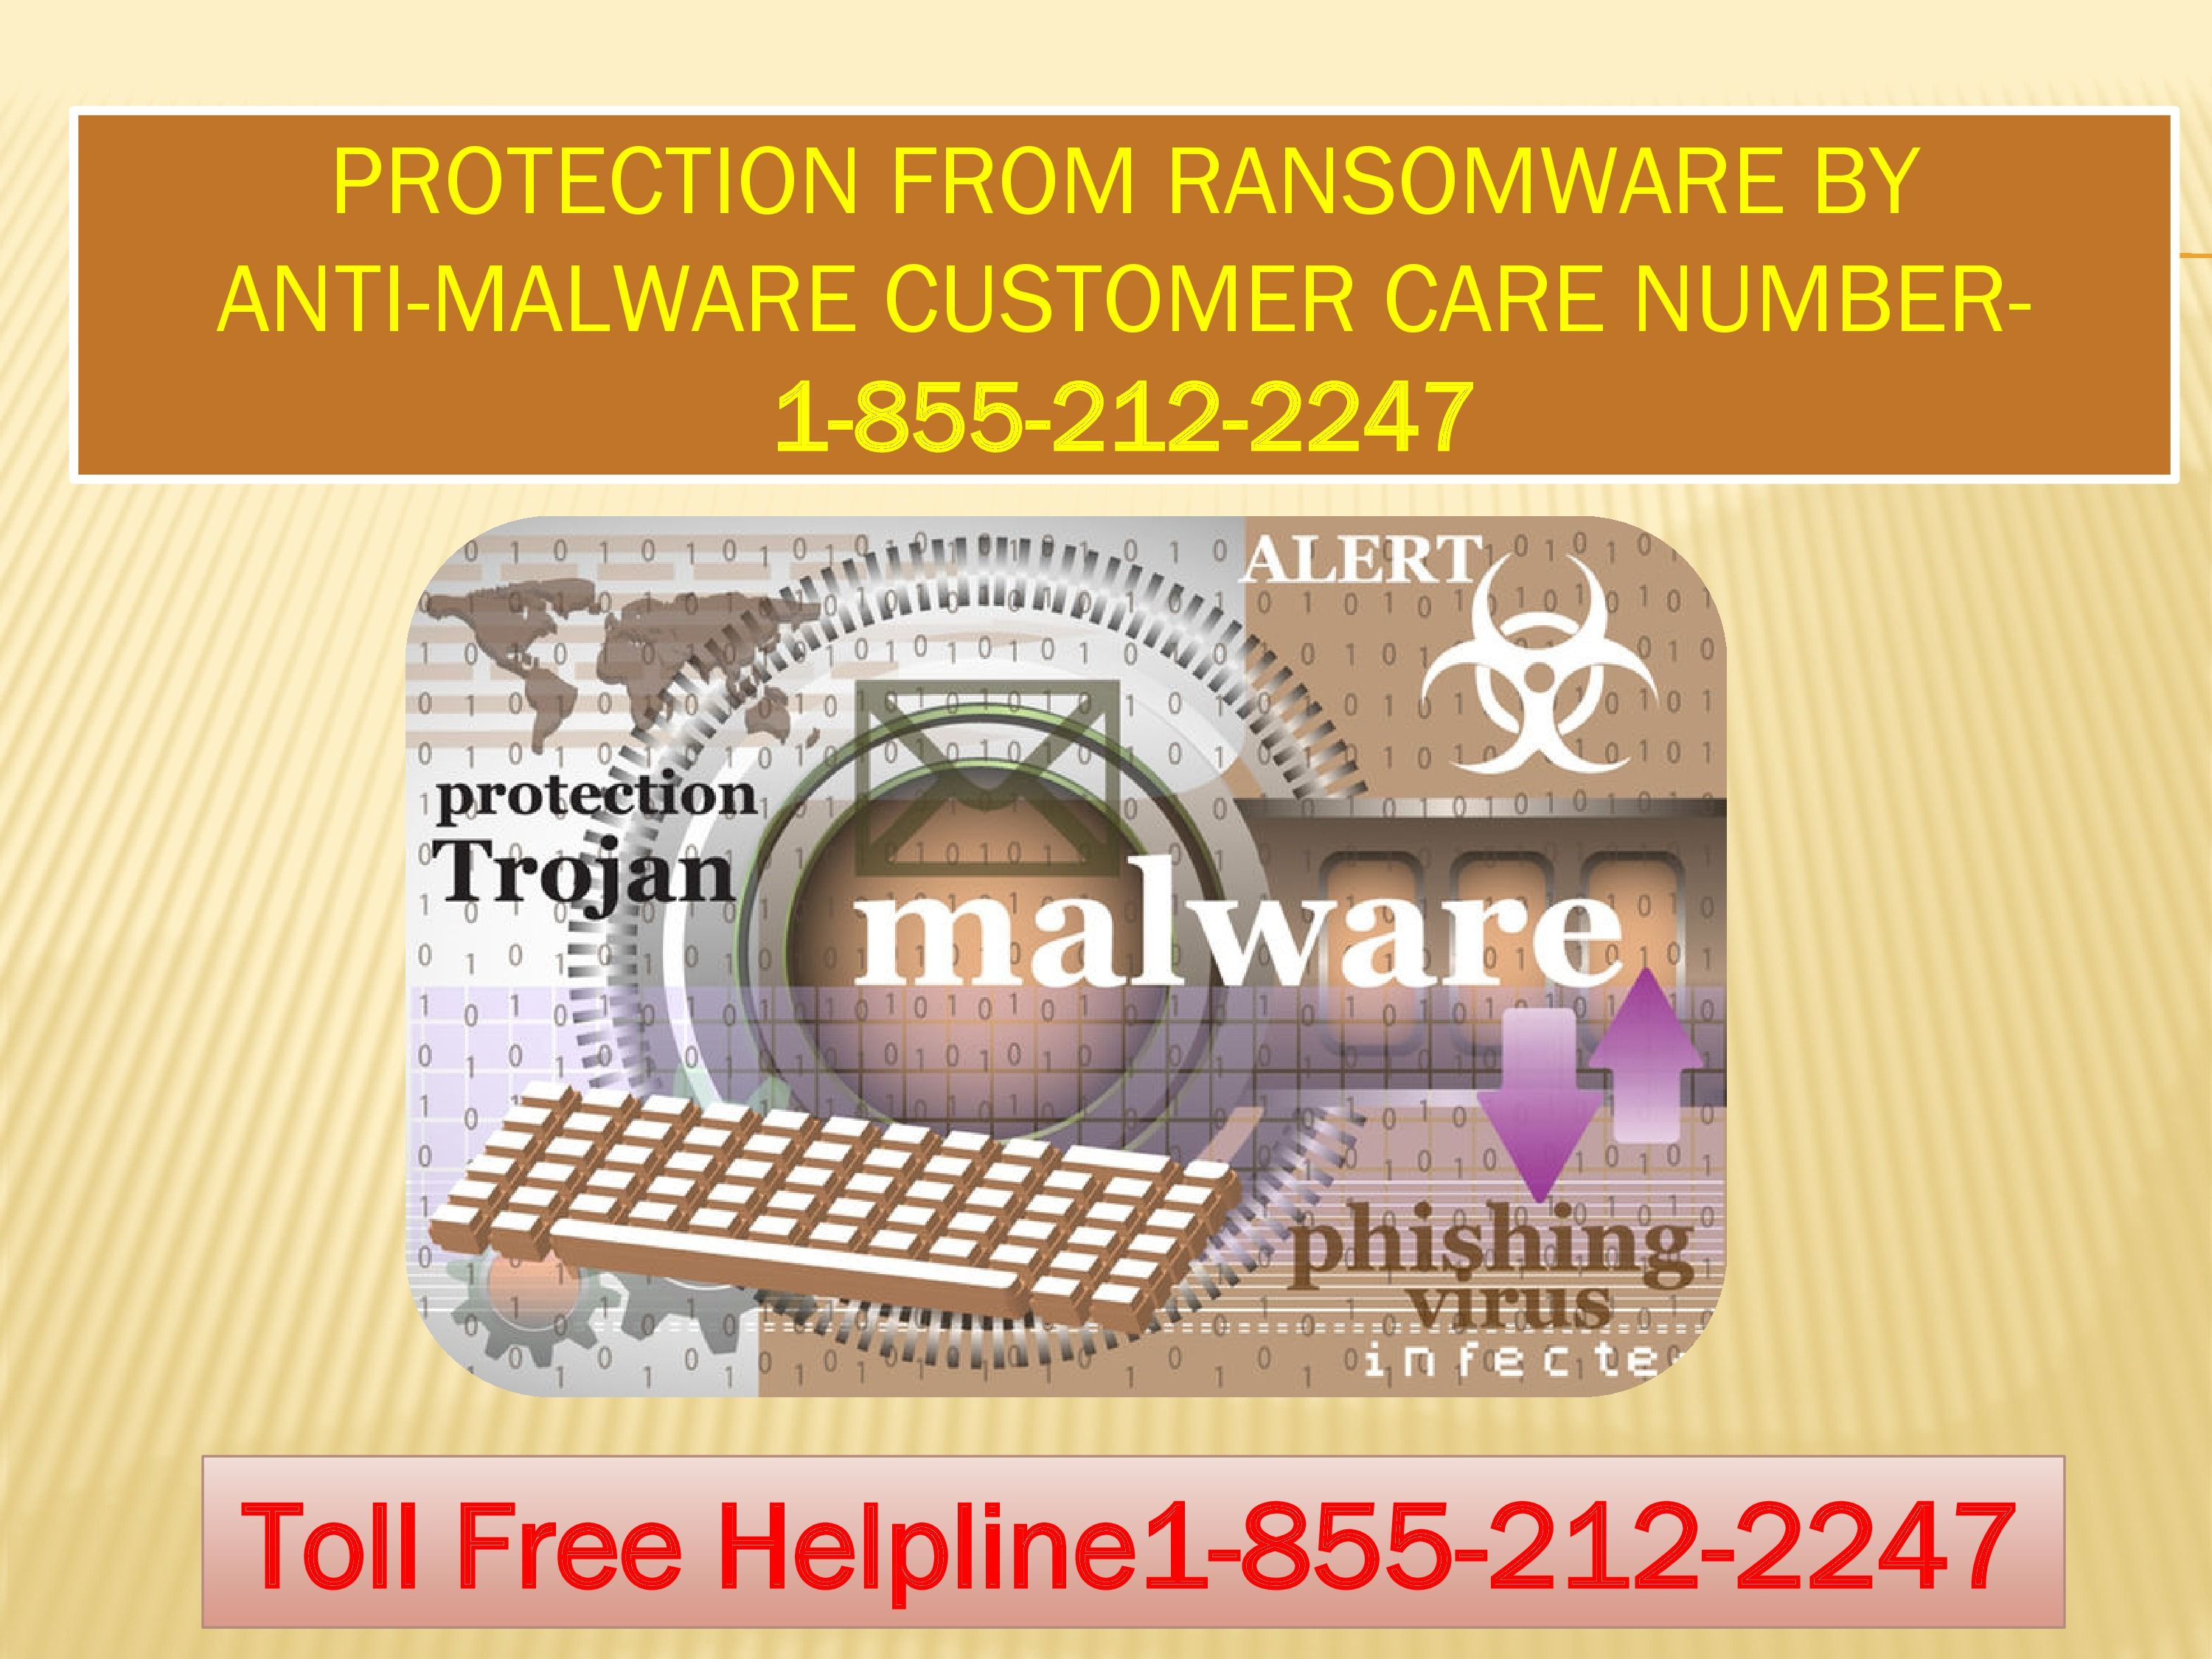 Malwarebytes Customer Service and support If you face any